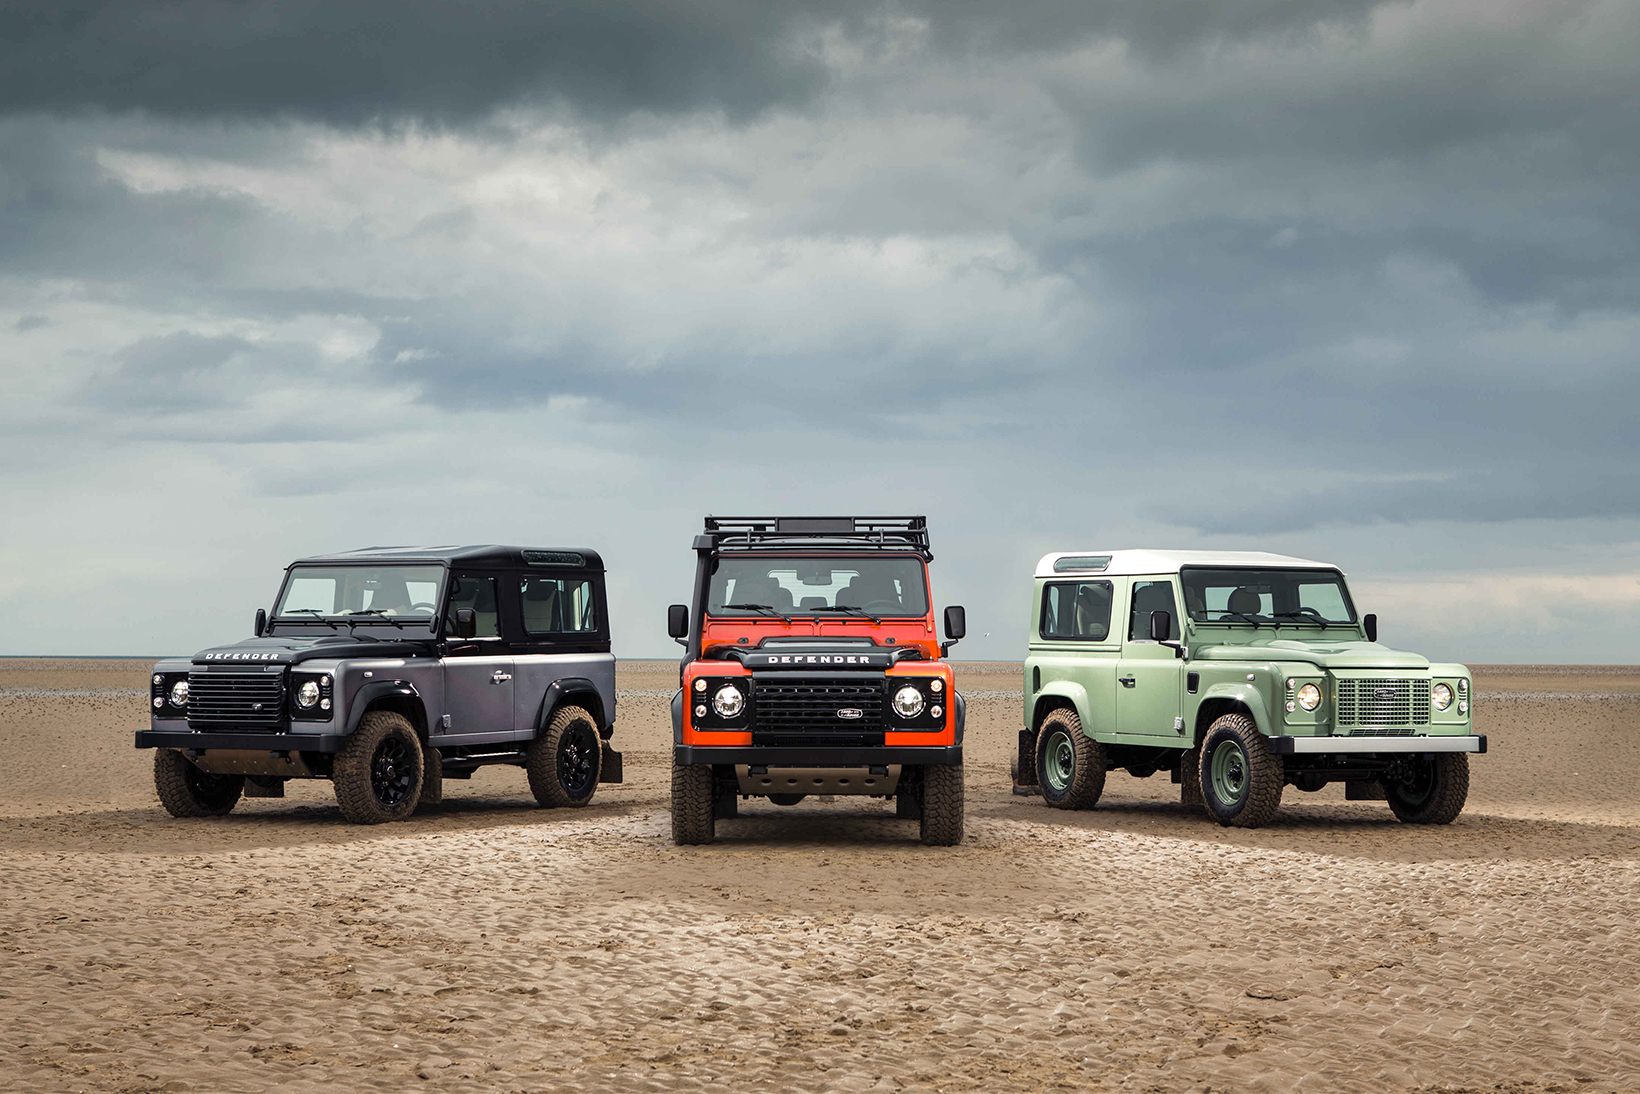 Billionaire Jim Ratcliffe Wants to Help Land Rover Revive the Defender